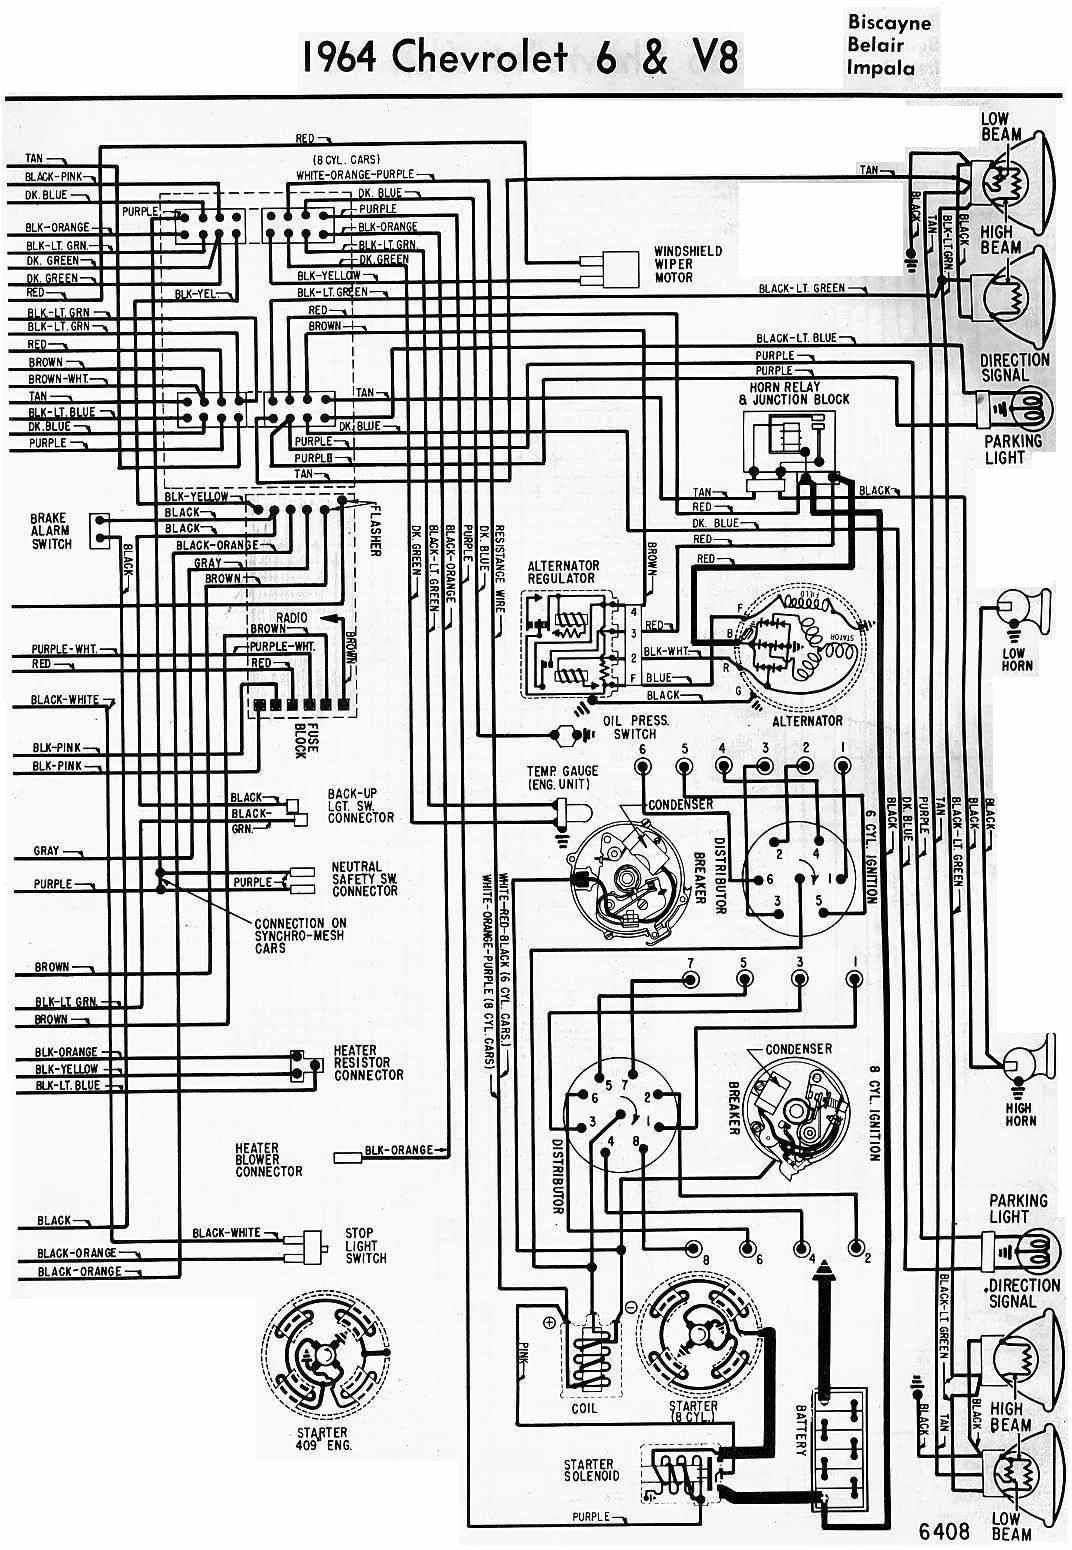 hight resolution of gm fuse box diagram 1964 impala wiring diagram paper 1964 chevy c10 fuse box diagram